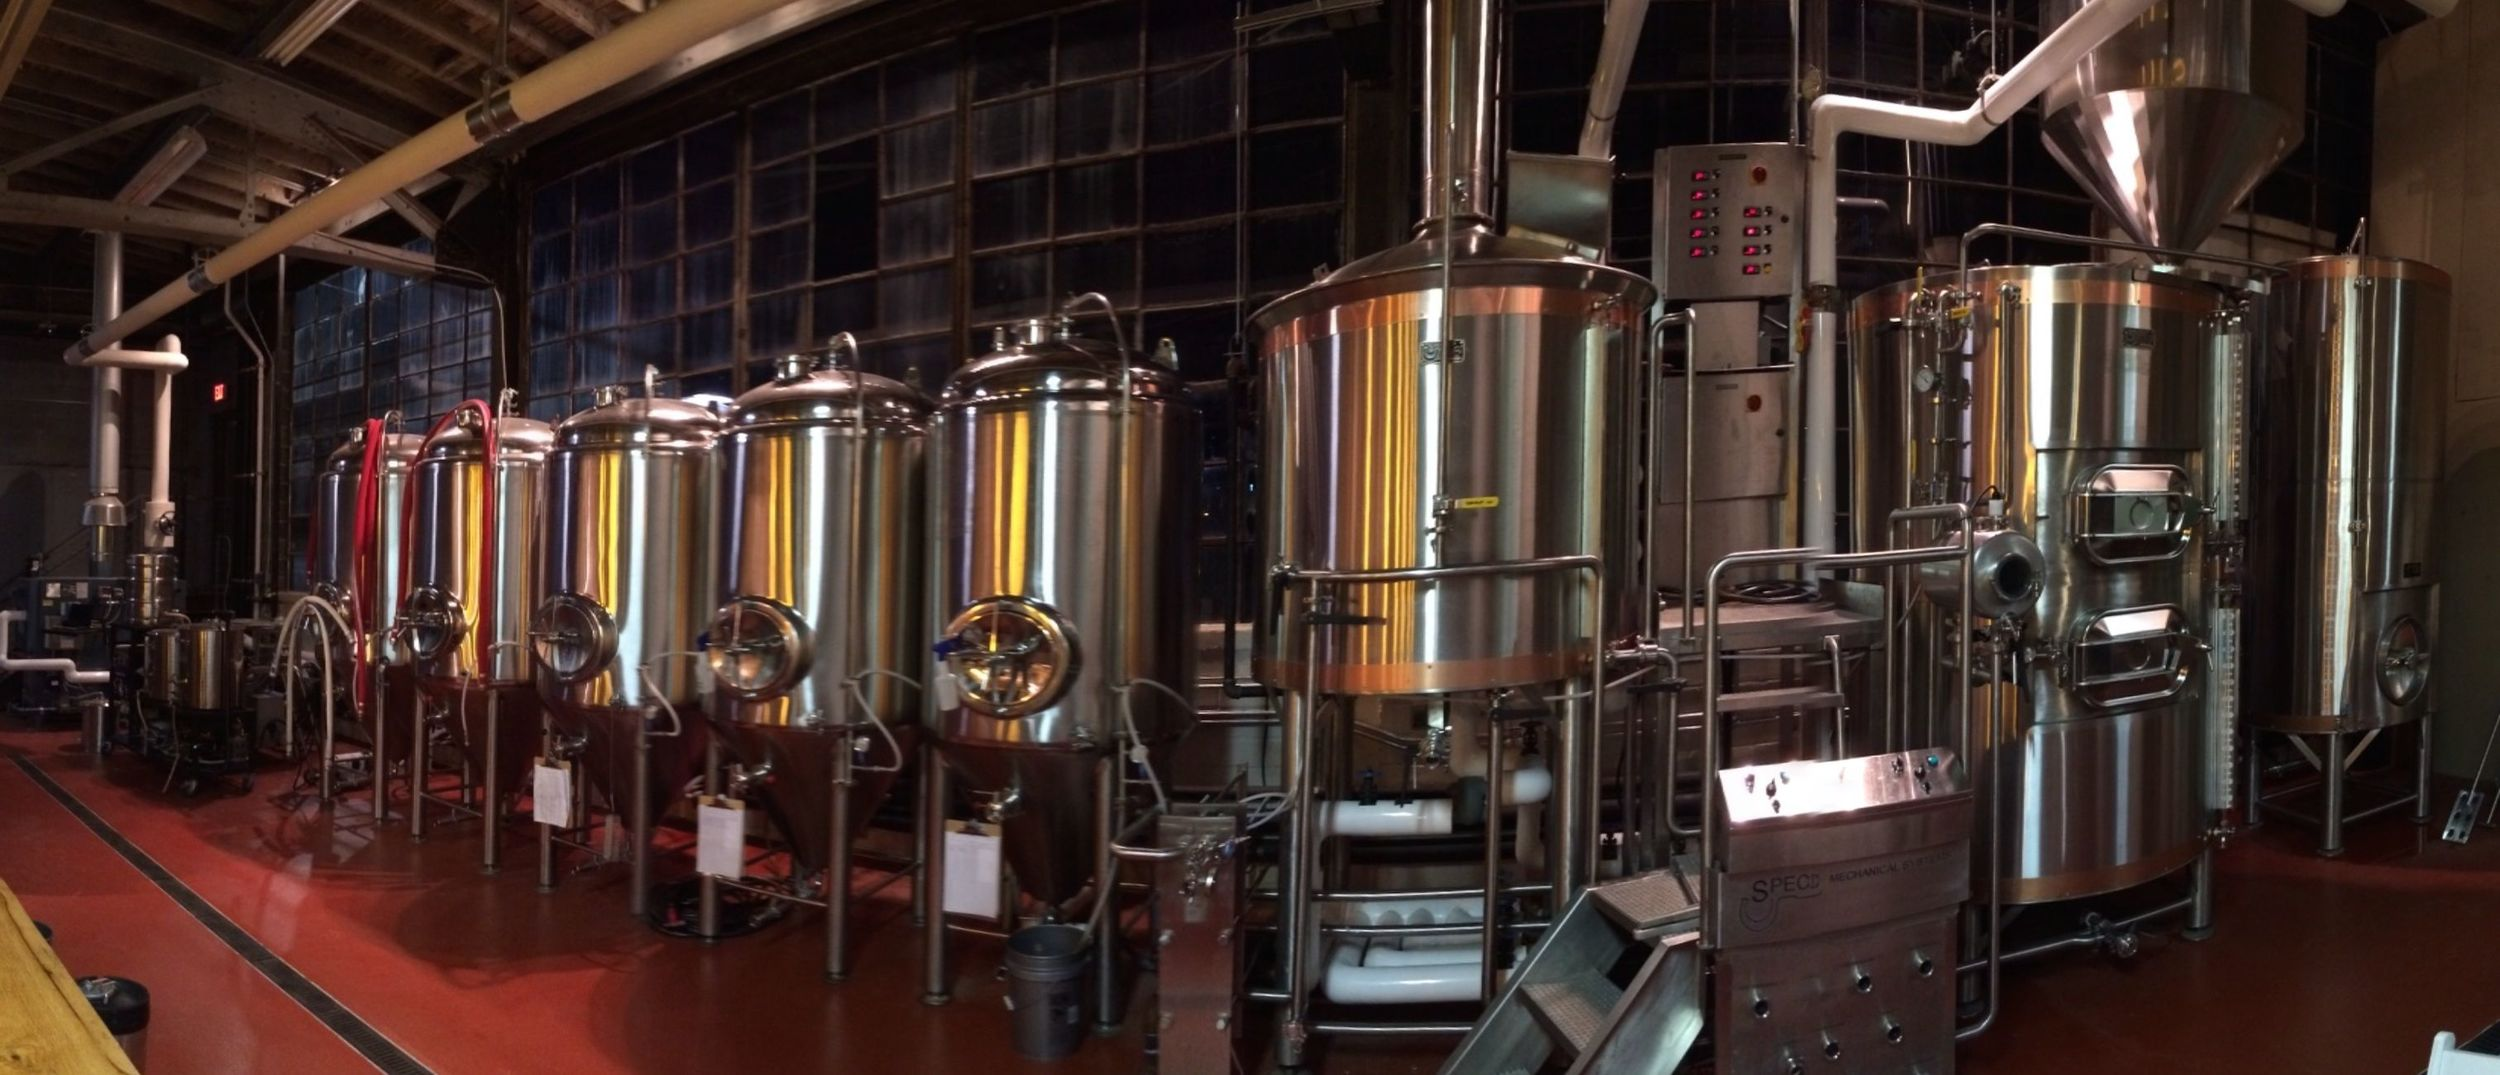 Shiny new equipment at Twin Leaf Brewery